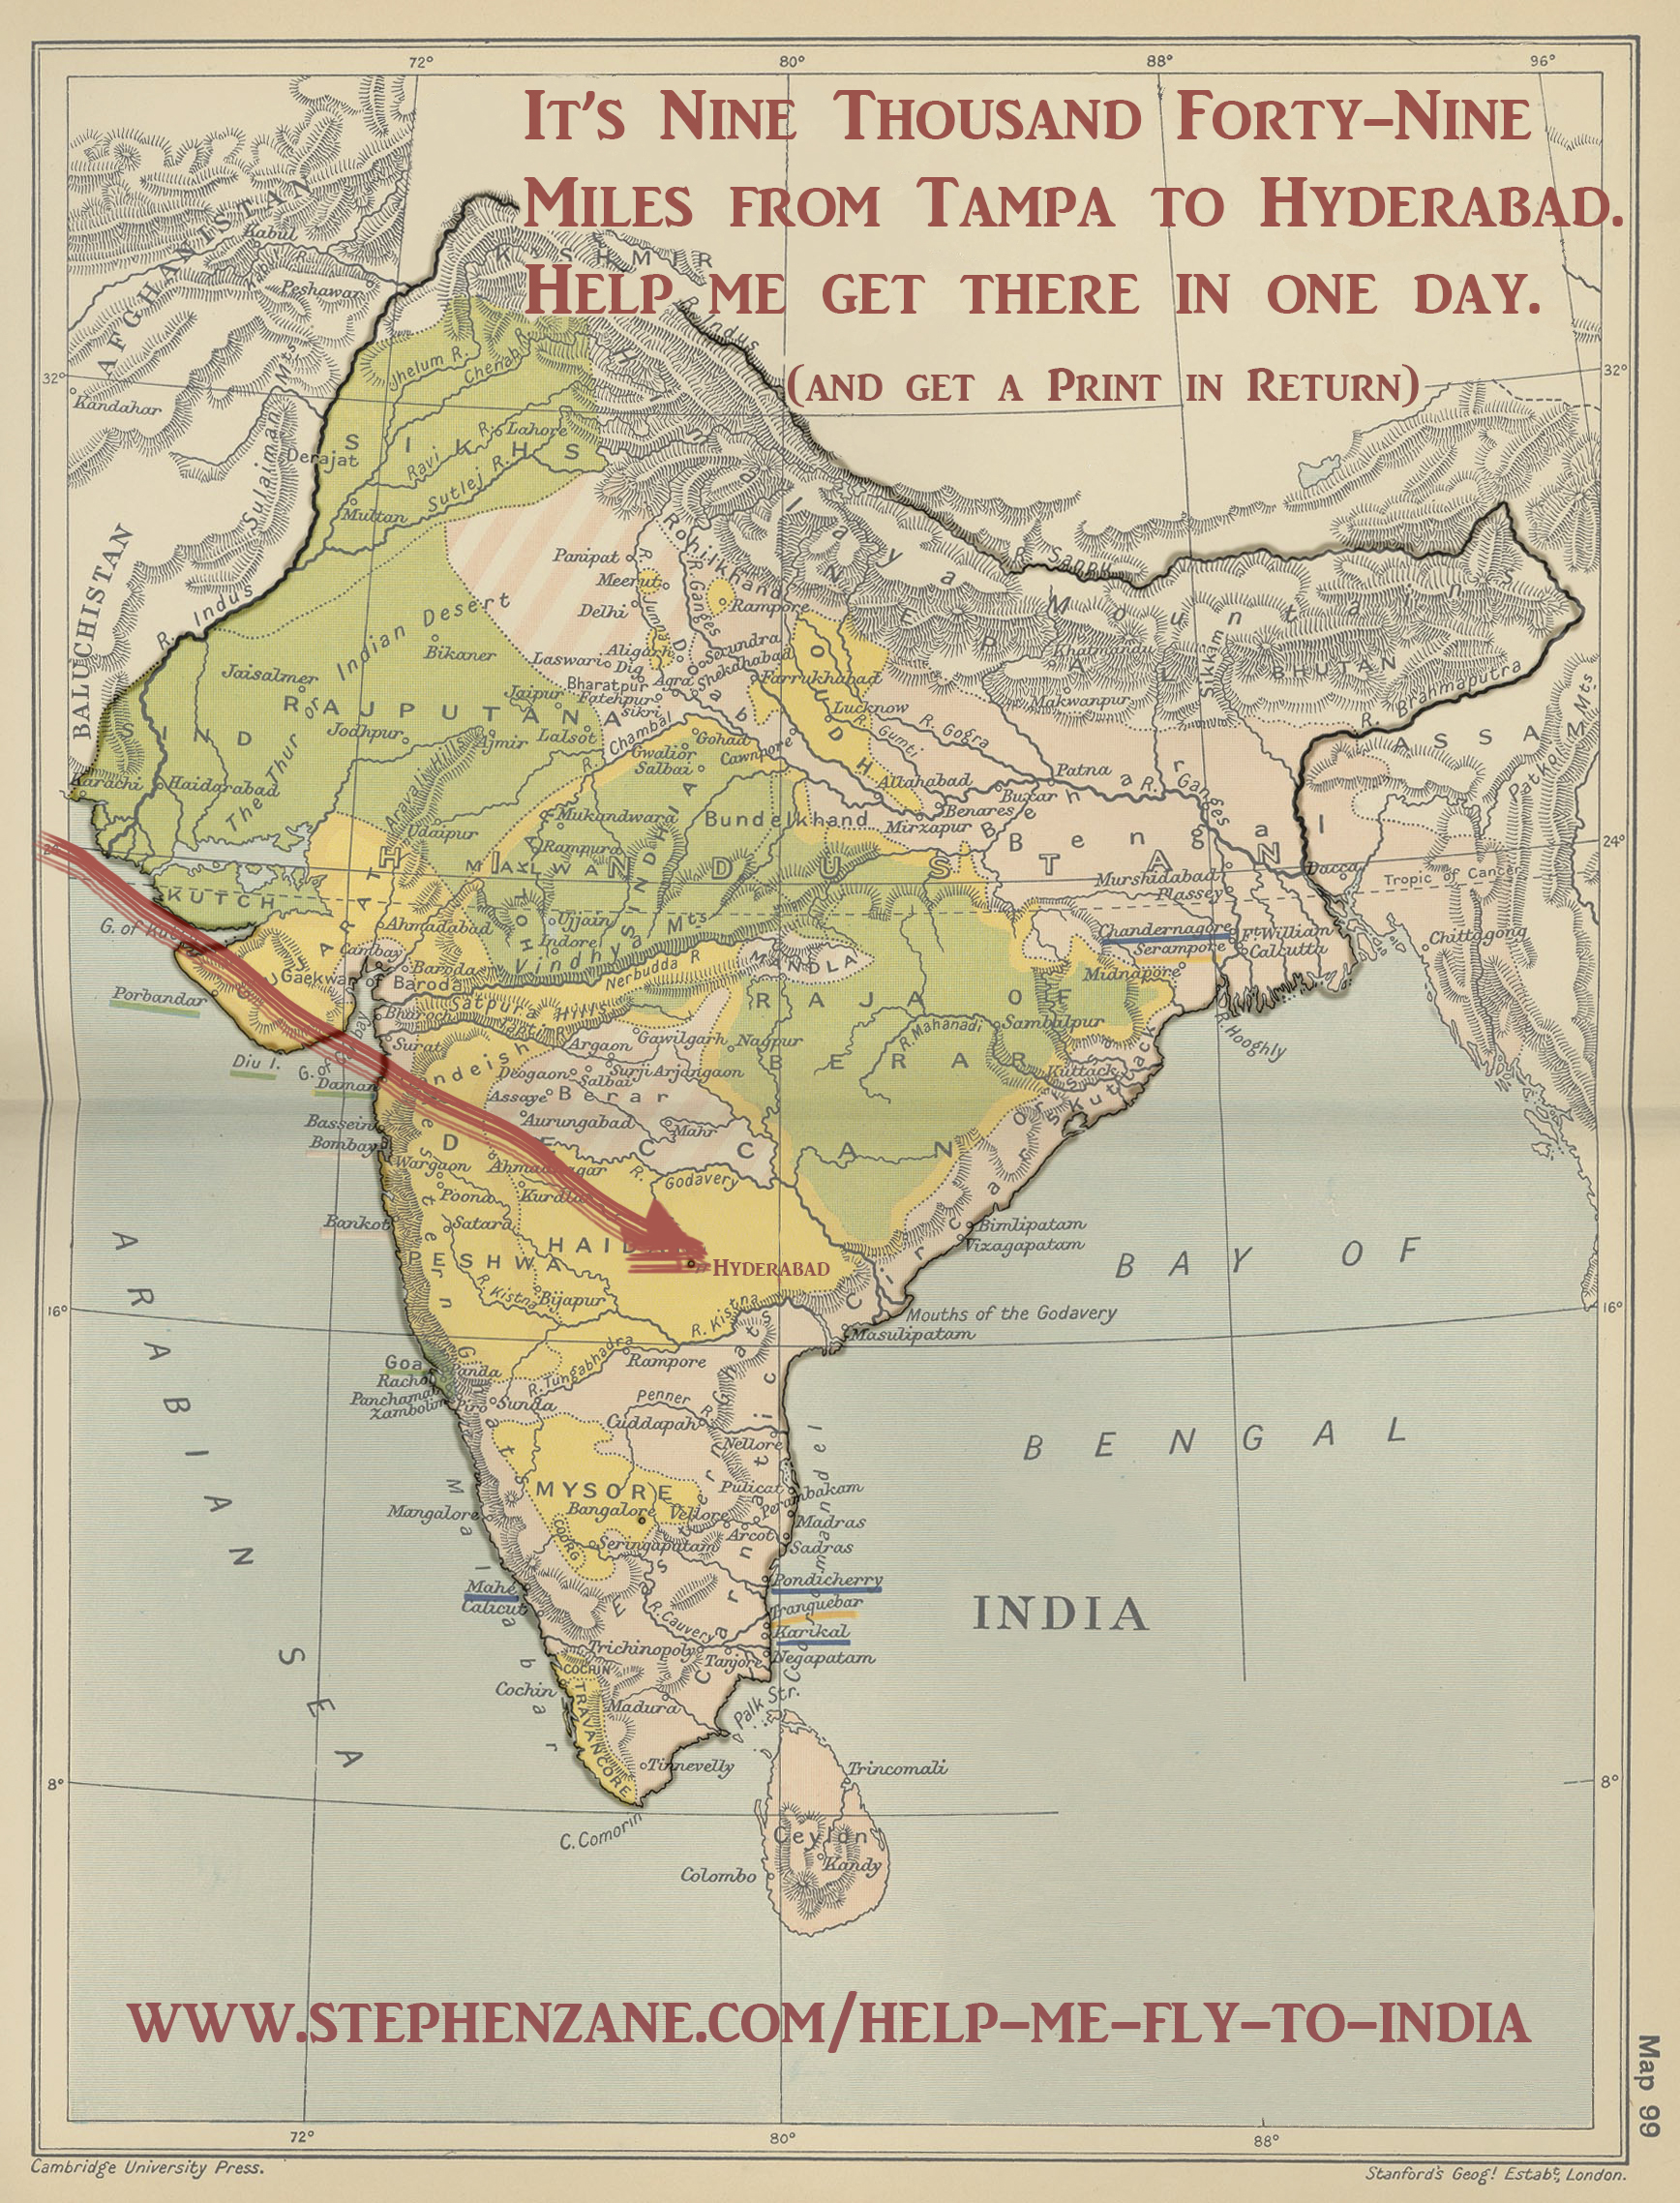 help me fly to india 2.jpg